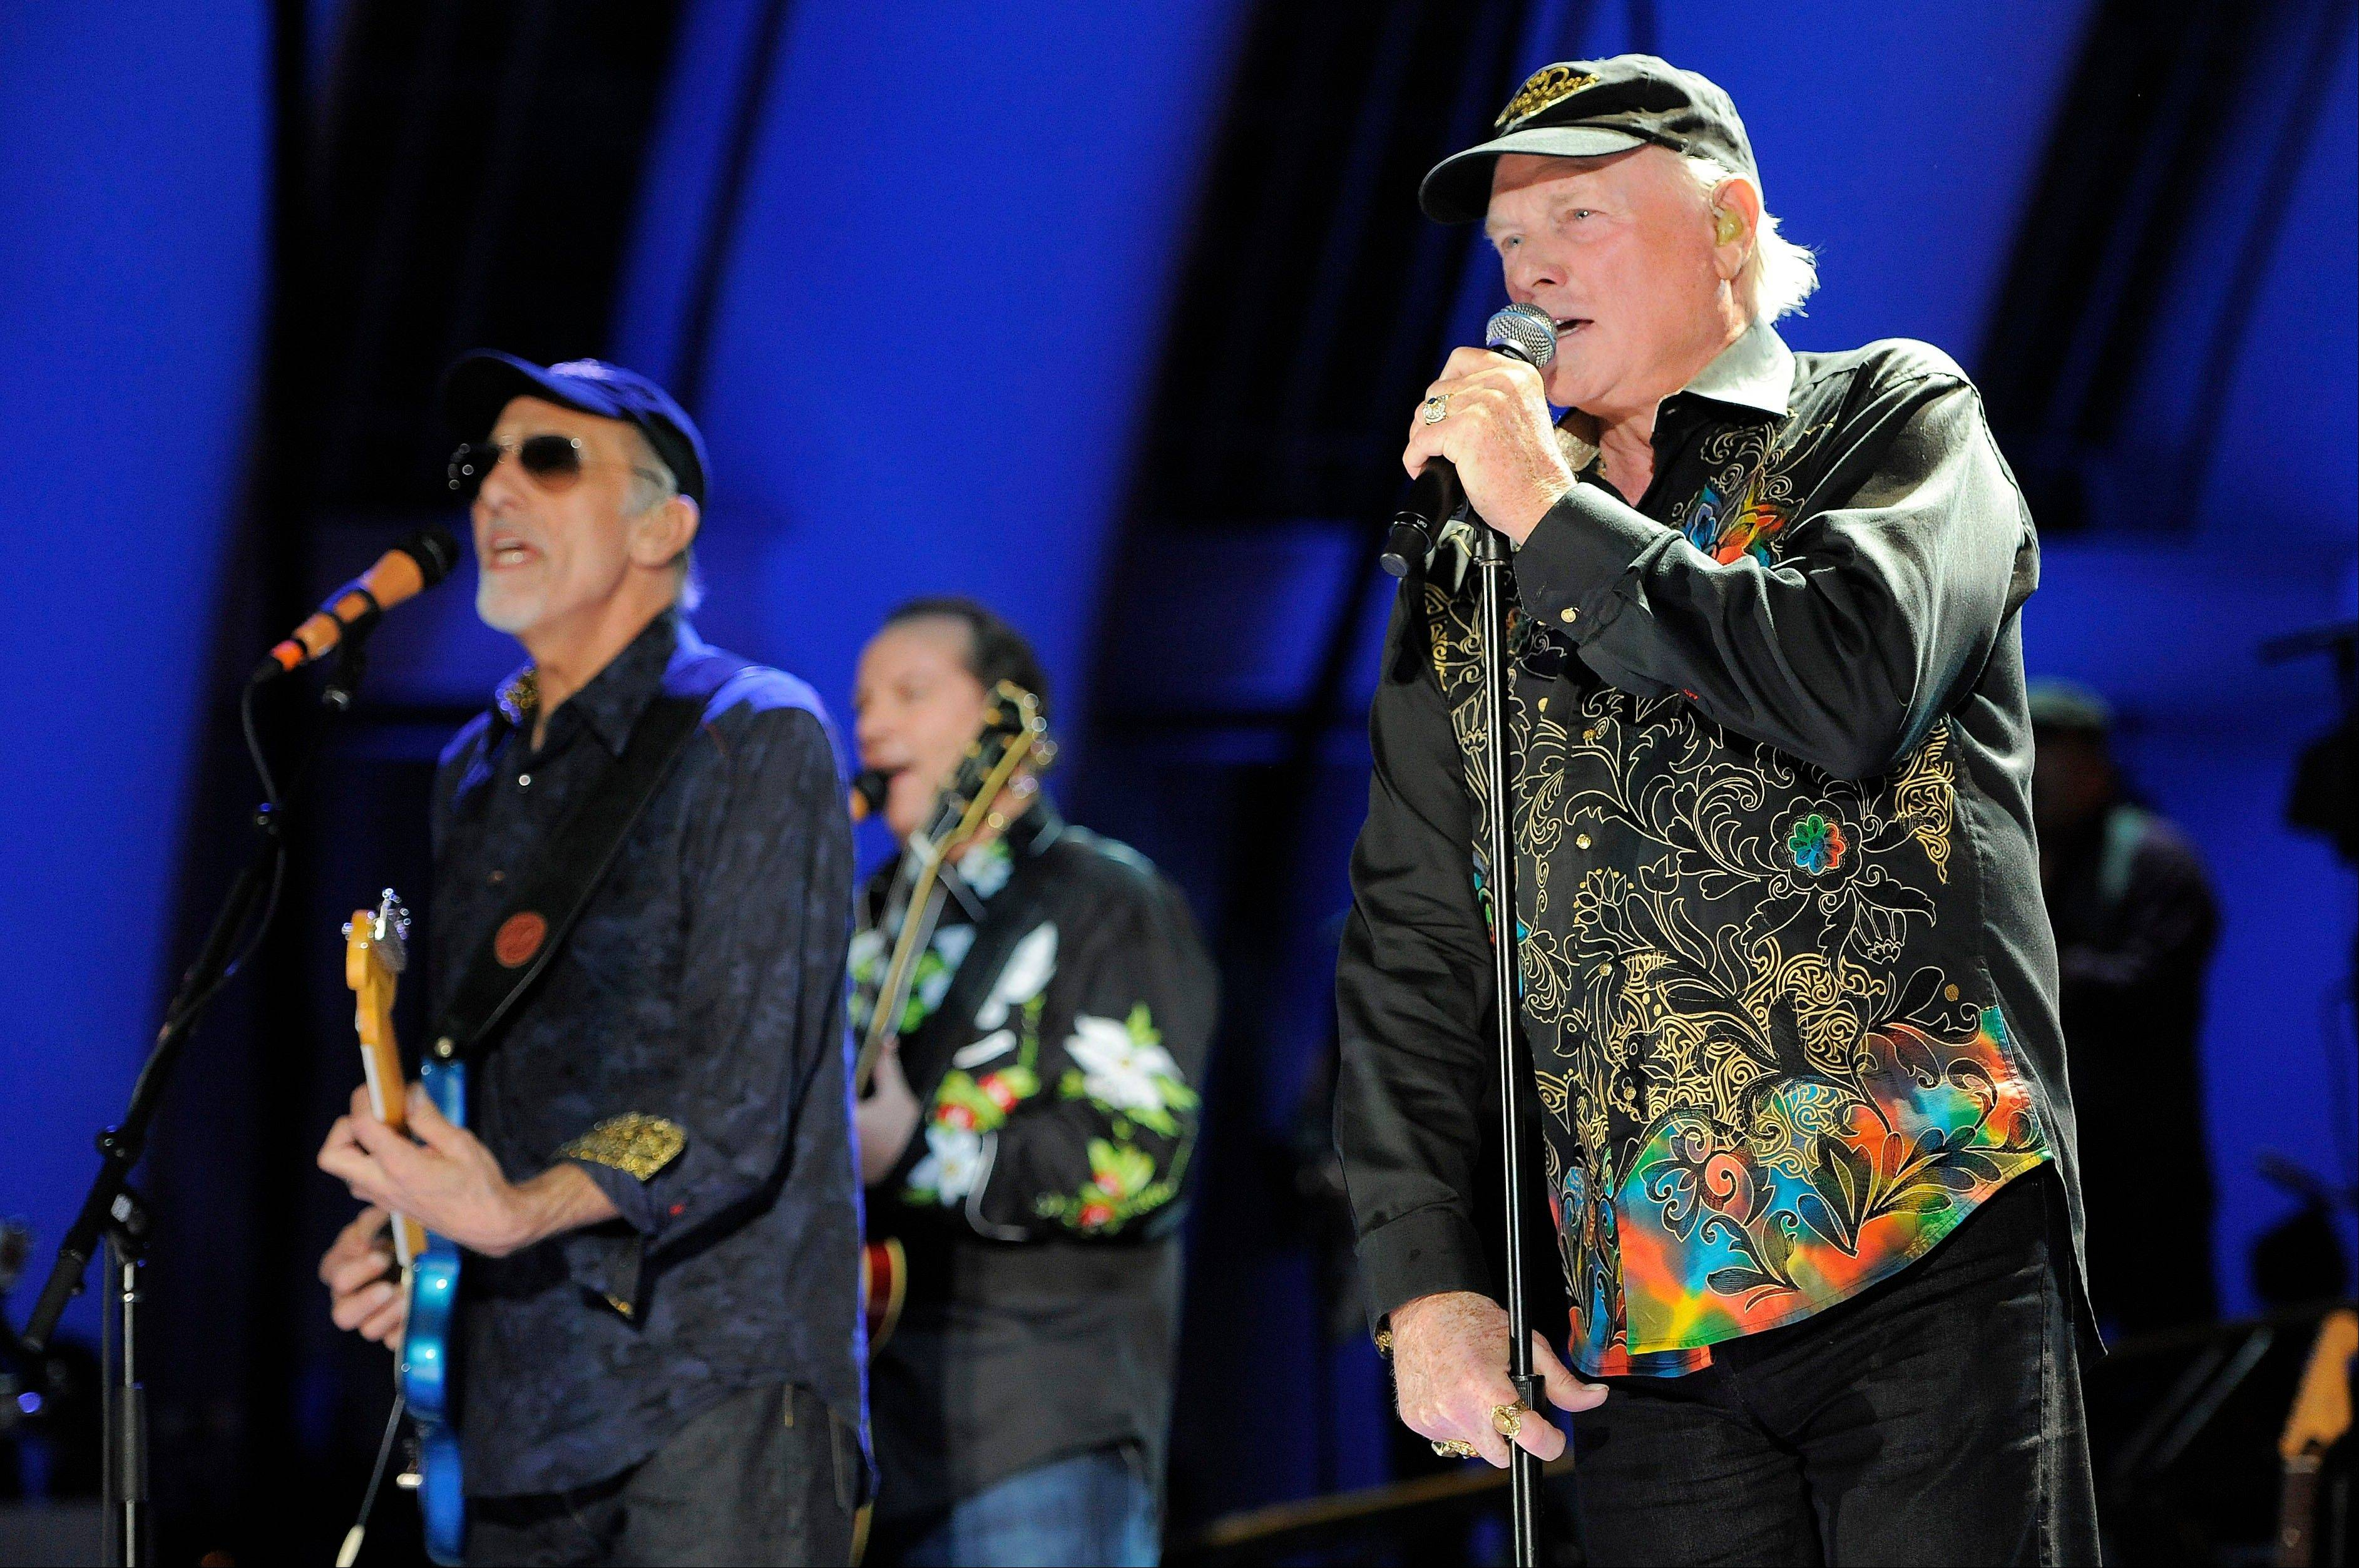 In this June 2, 2012 file photo, Mike Love, right, of The Beach Boys, performs alongside fellow band member David Marks at the Hollywood Bowl in Los Angeles. Brian Wilson says he felt blindsided by a news release from his Beach Boys bandmate Mike Love that ended the good vibrations on the band�s 50th anniversary tour. Wilson says the expectation was that both sides would help craft and approve the news release. That didn�t happen and now he thinks it�s Love�s turn to reach out.